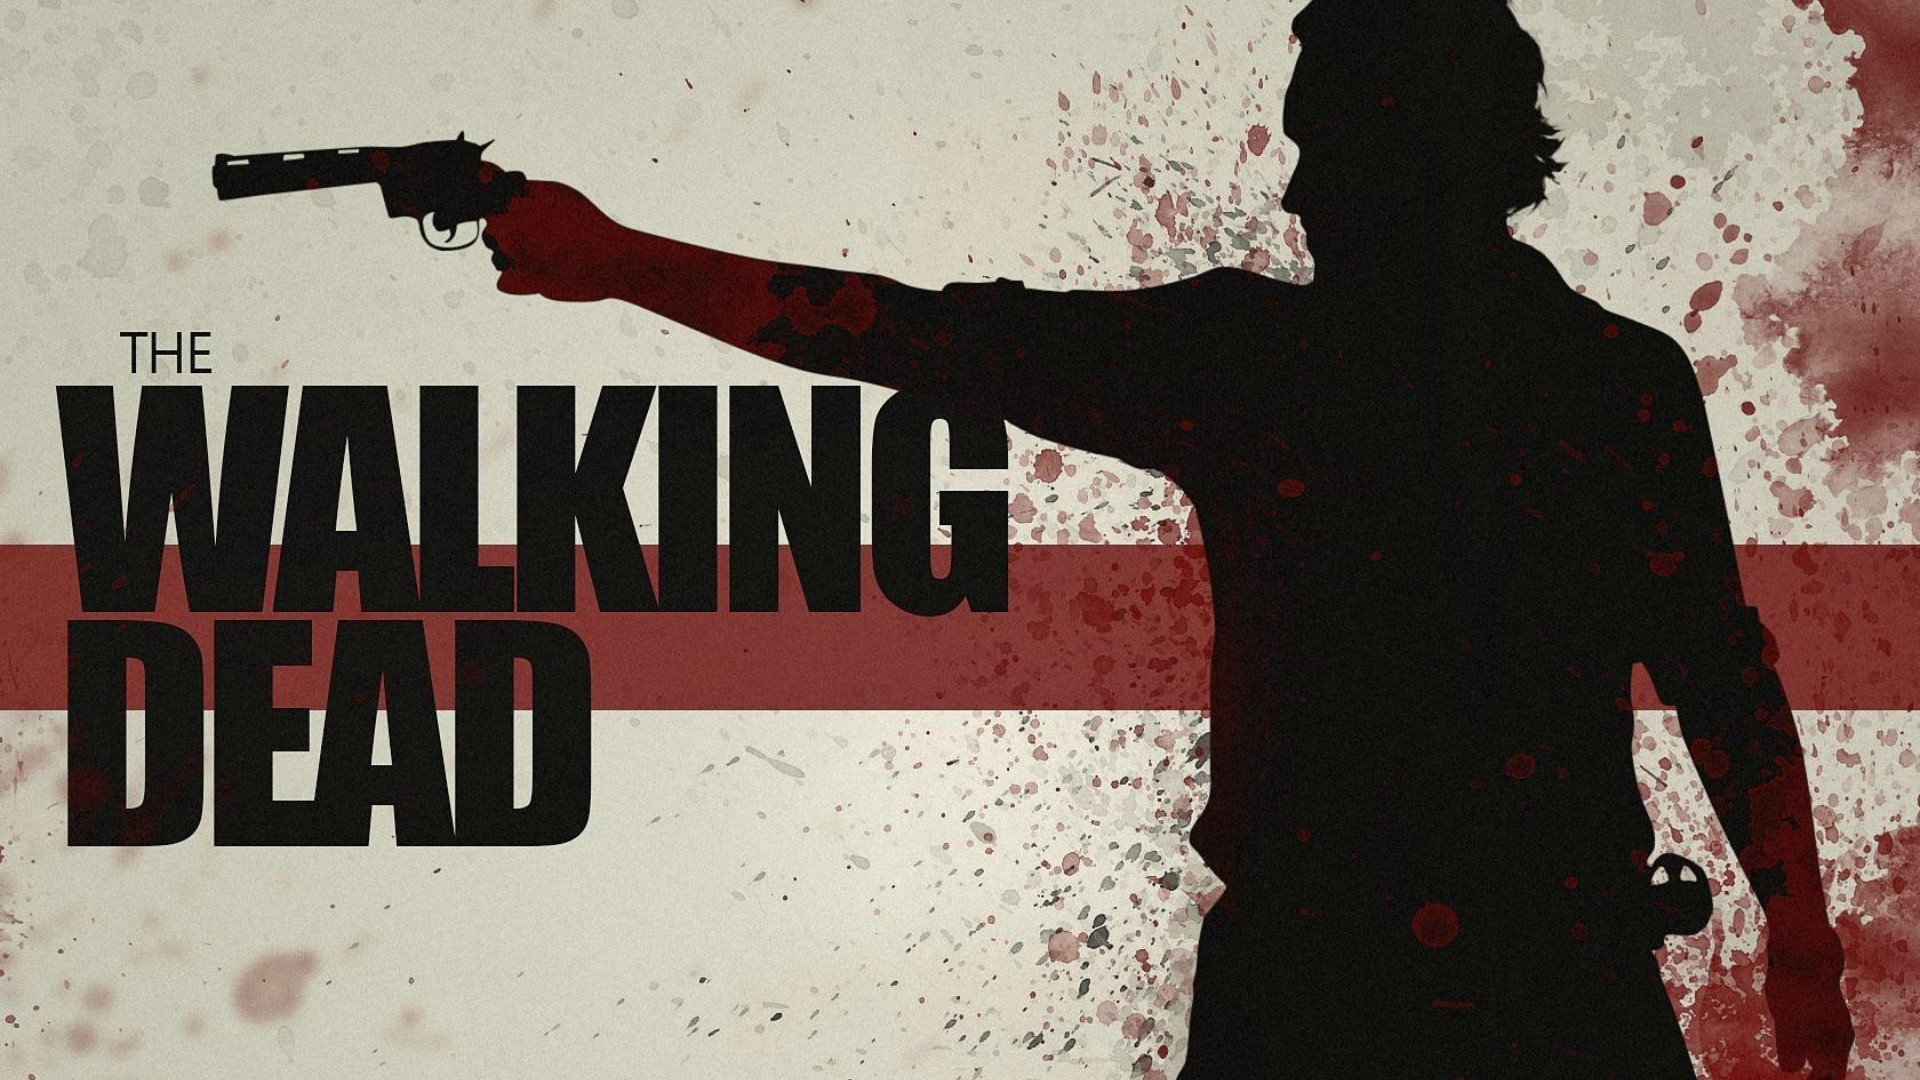 the_walking_dead_rick_grimes_andrew_lincoln_rick_grimes_andrew_lincoln_blood_sprays_drops_vector_93648_1920x1080